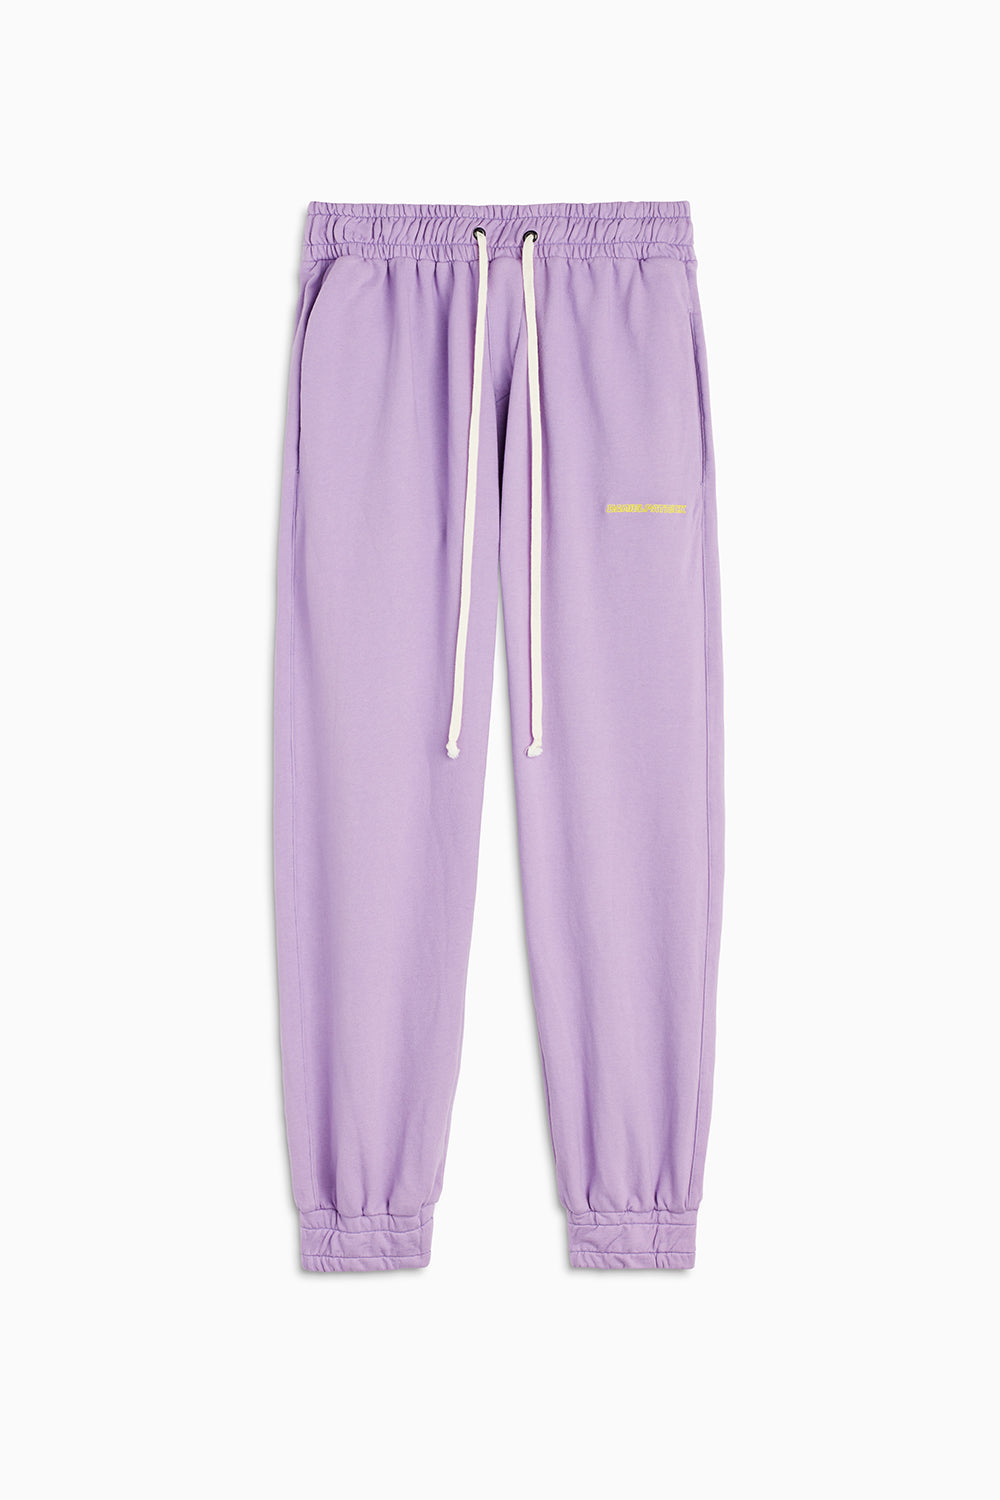 roaming track pant ii / purple haze + yellow